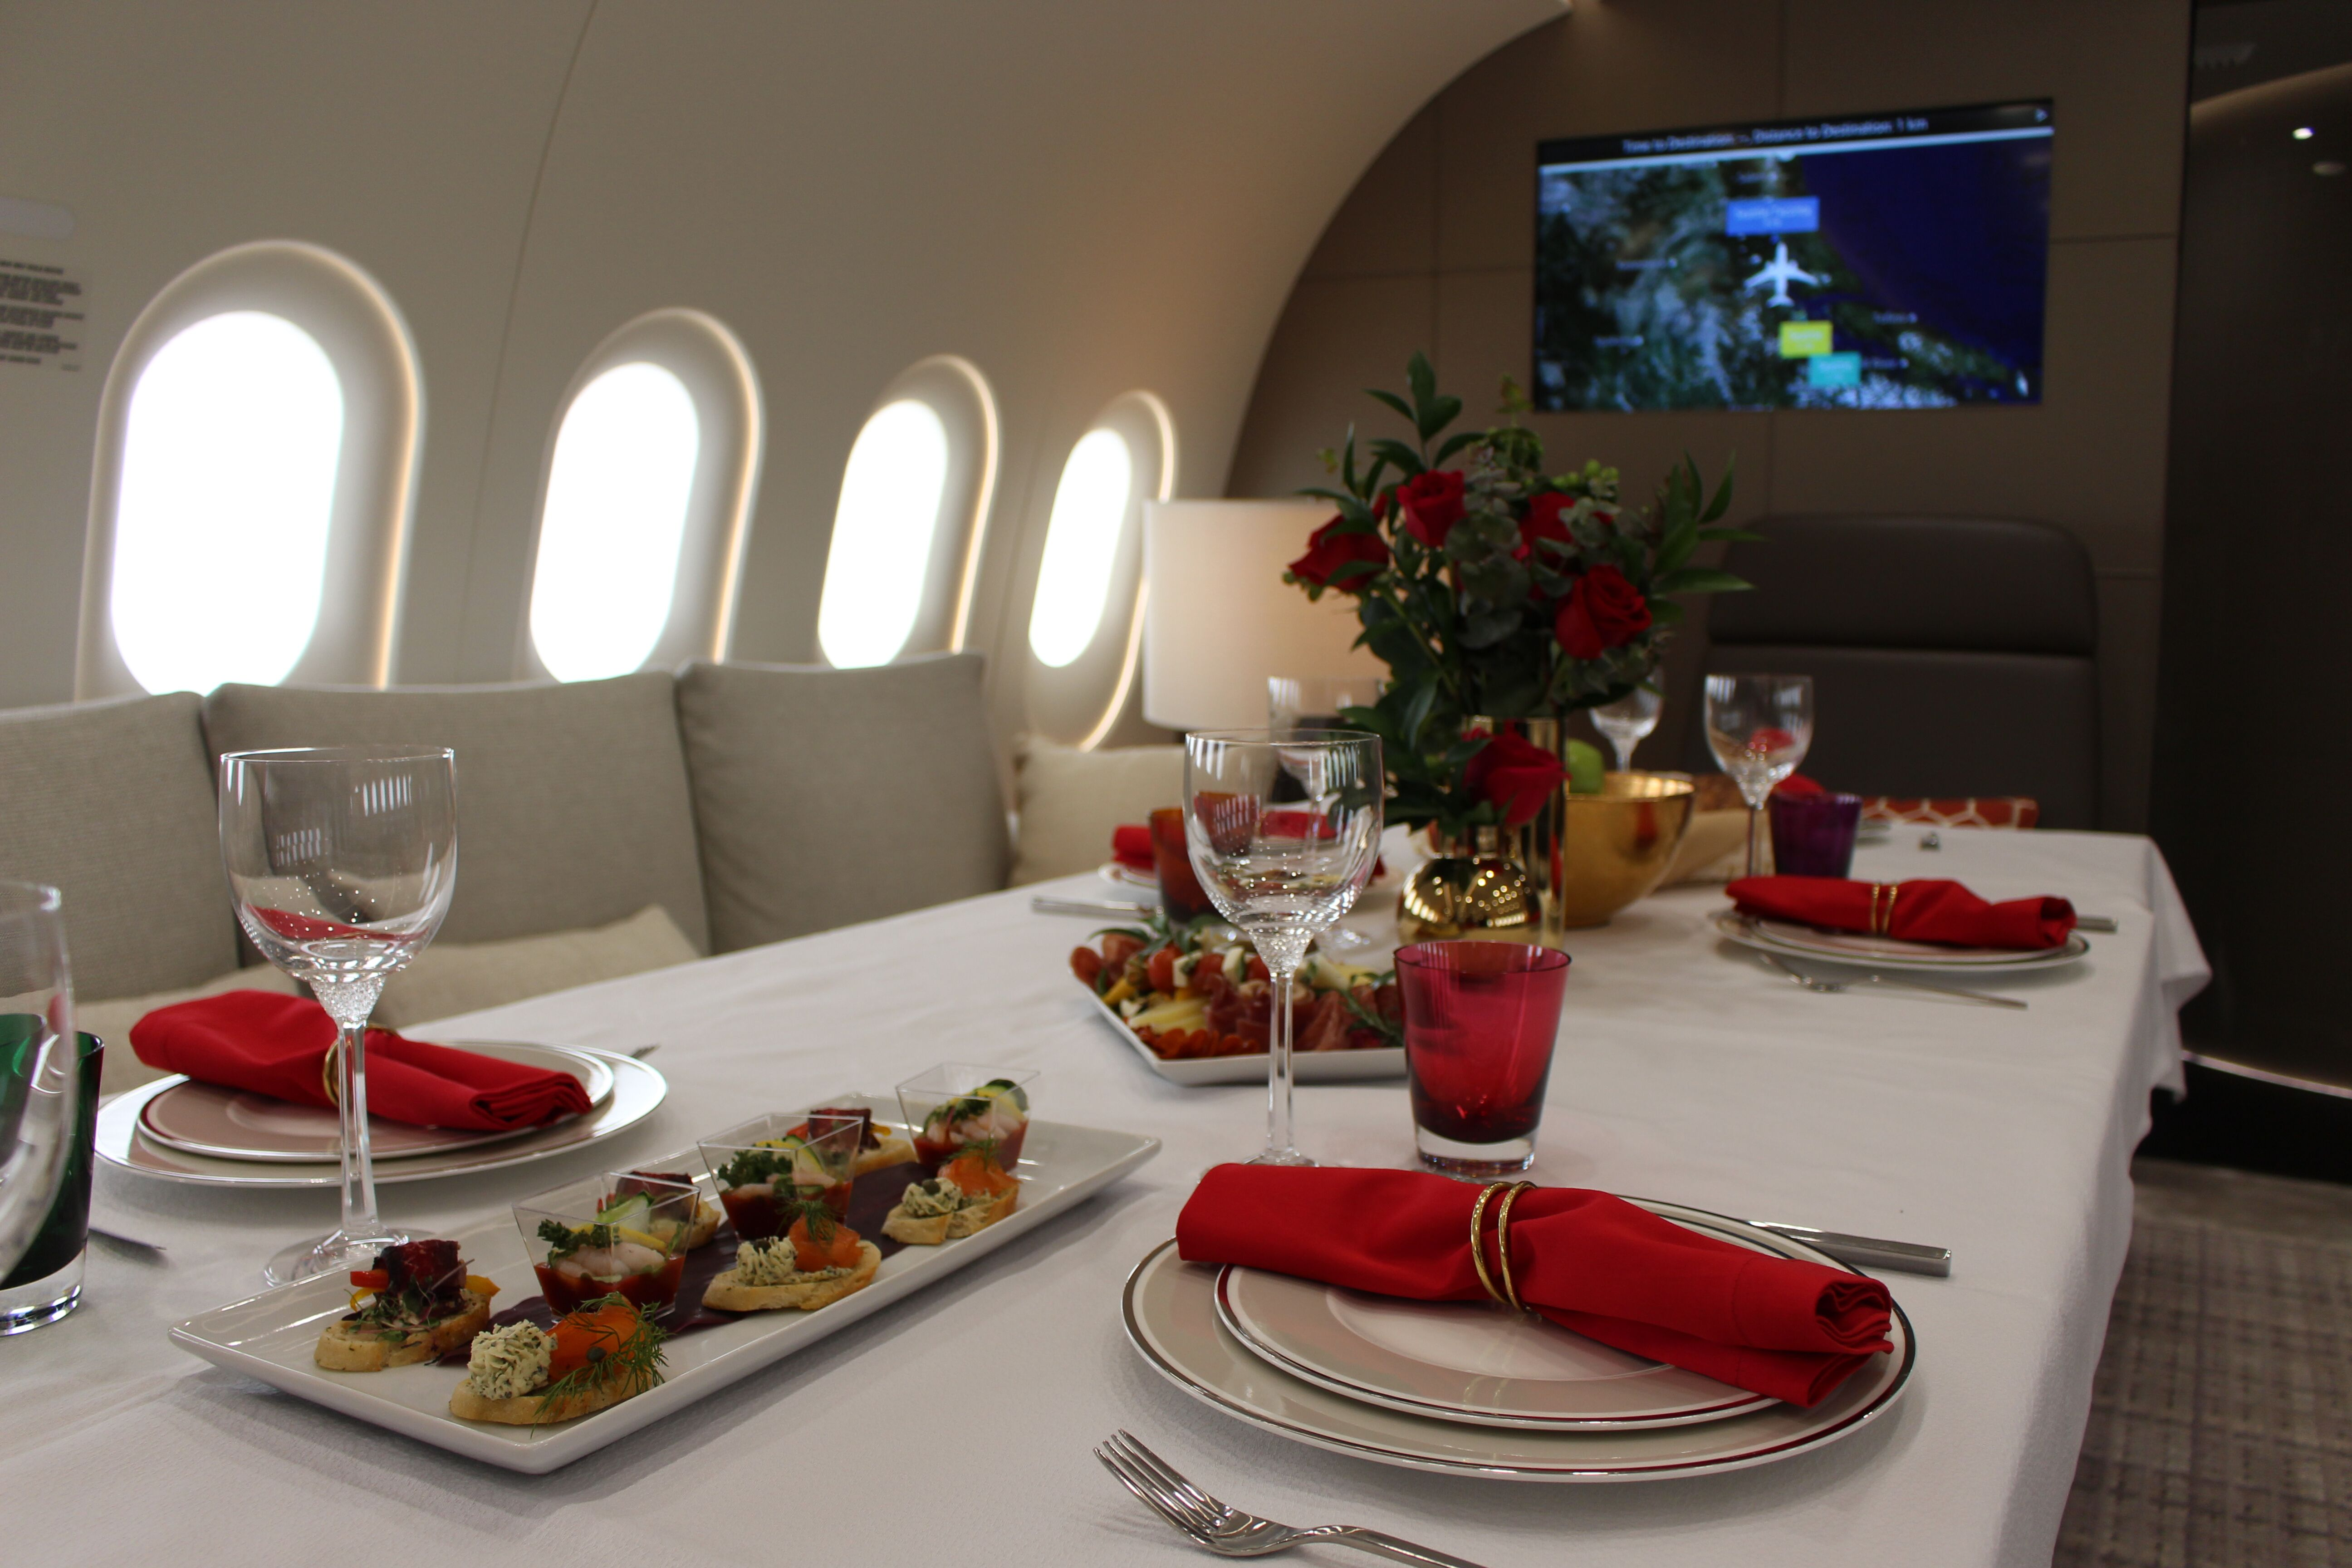 Want To Fly In Style Rent This 787 Dreamliner For 70 000 An Hour